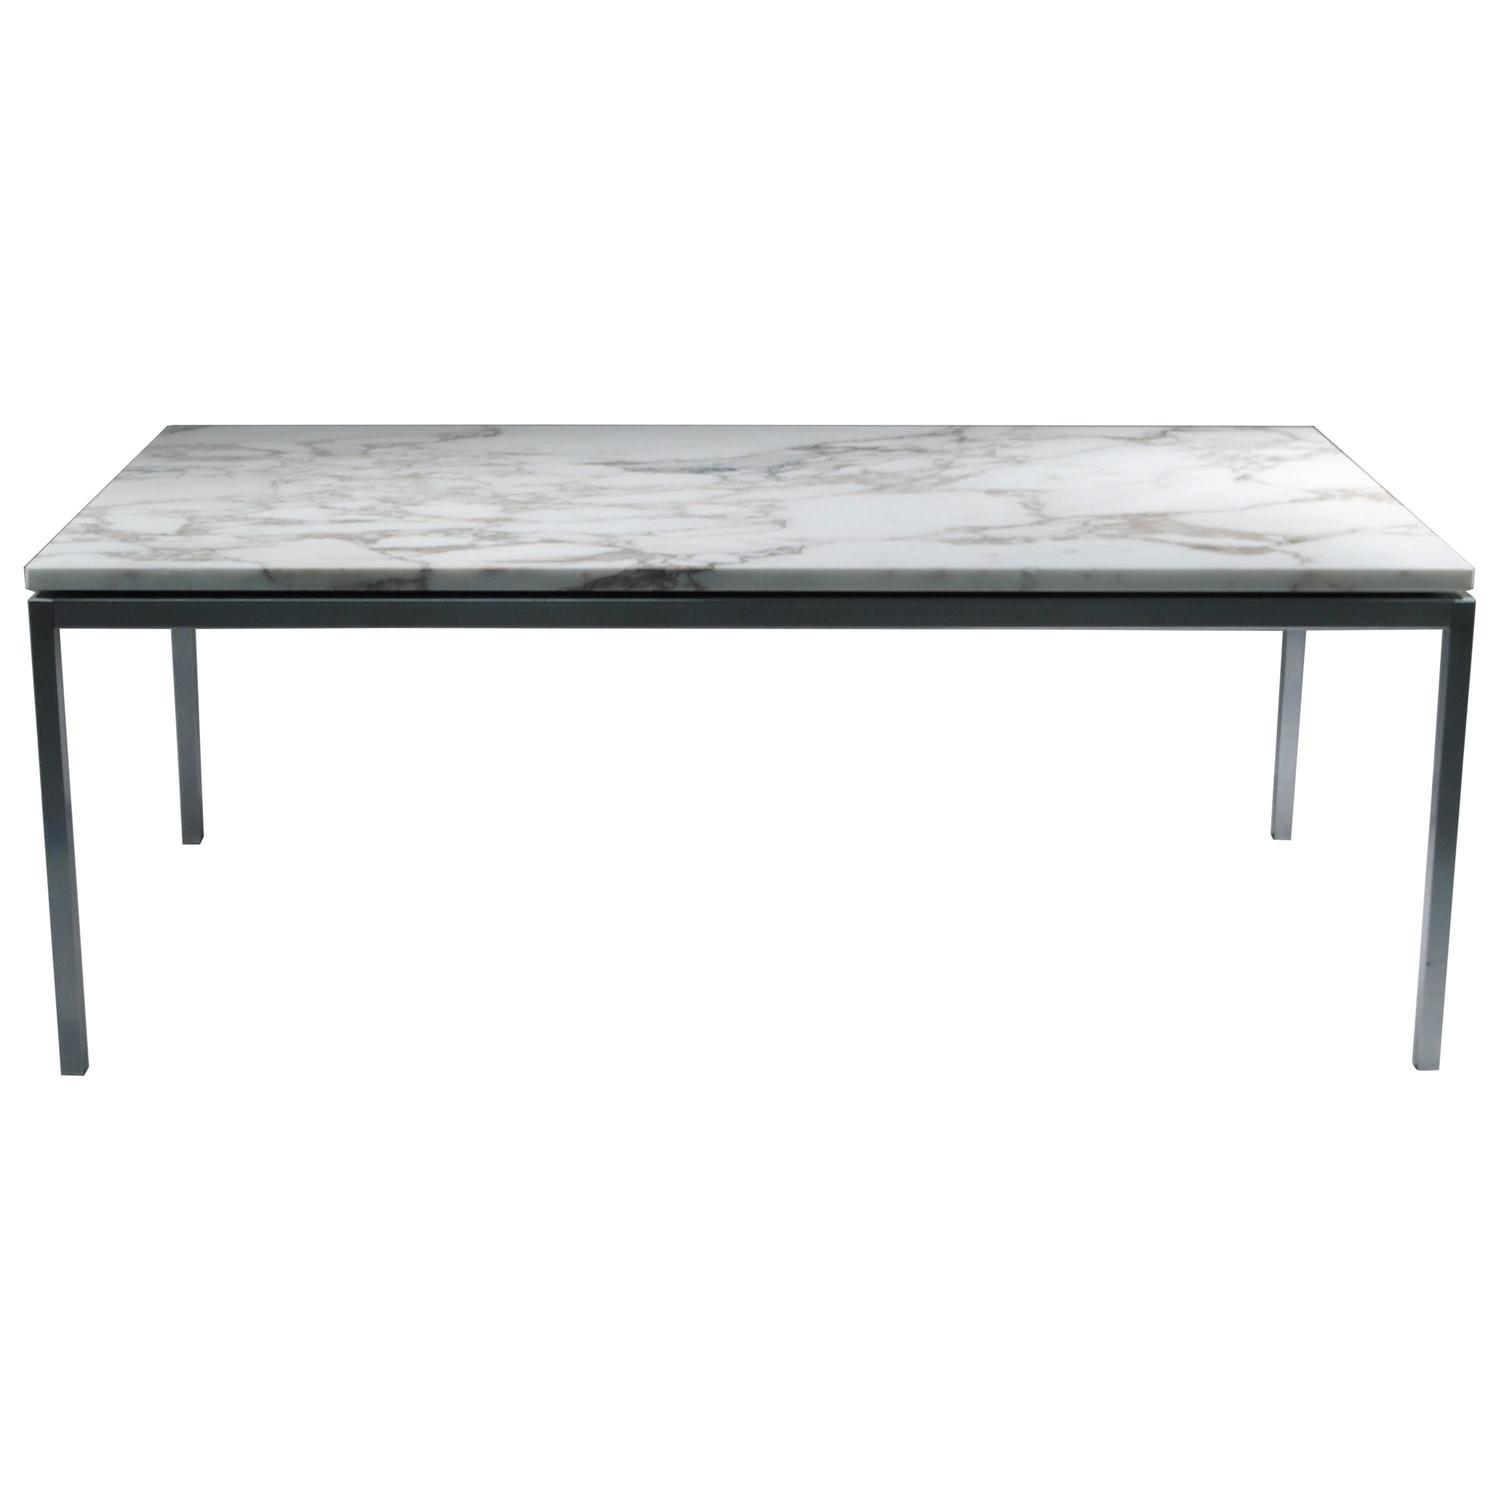 Florence knoll marble top coffee table at 1stdibs for Stone topped coffee tables